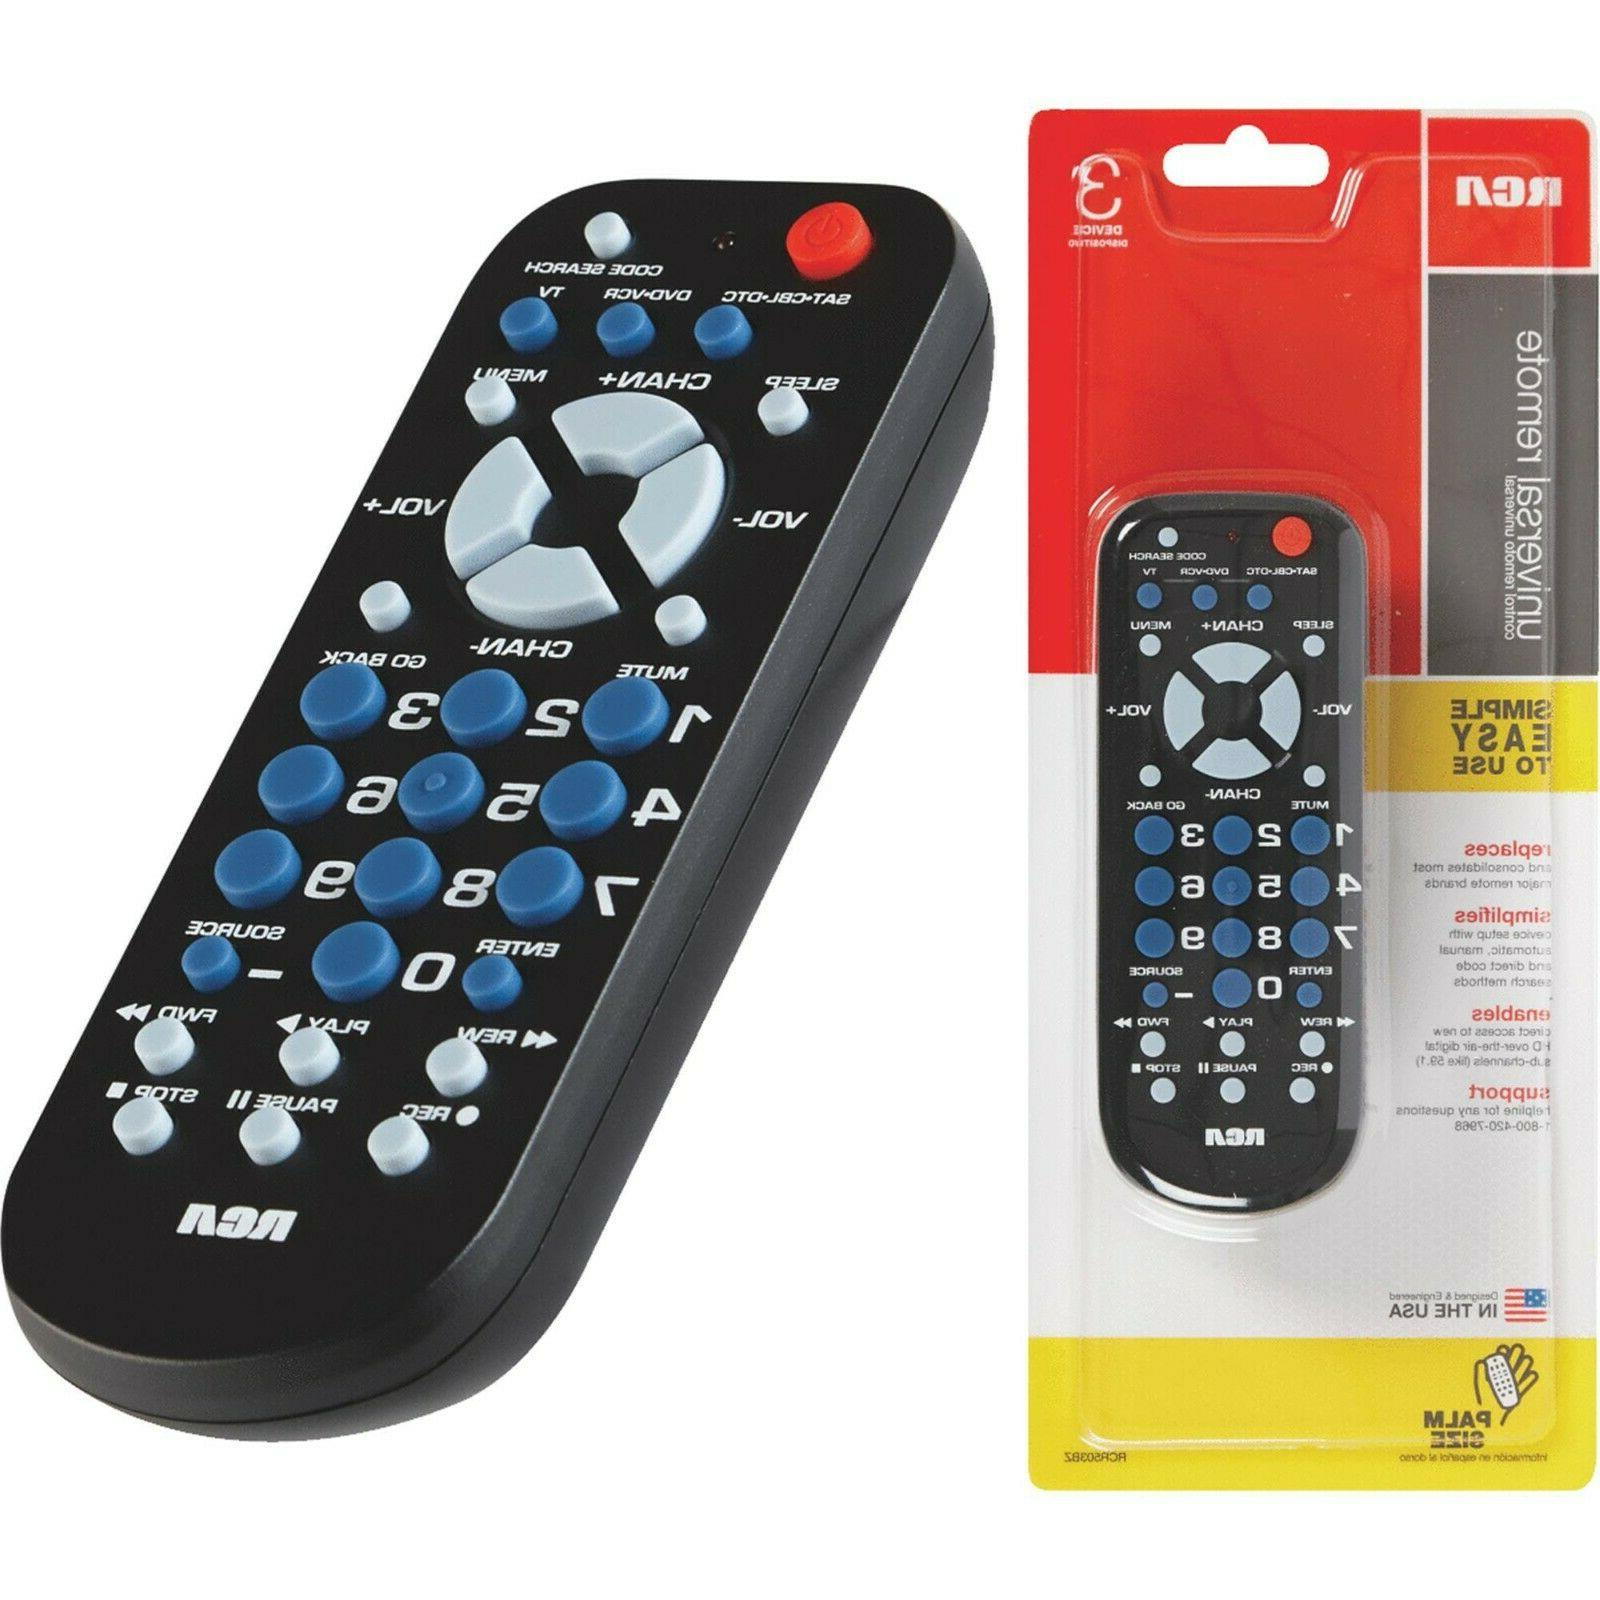 new 3 device palm sized universal remote